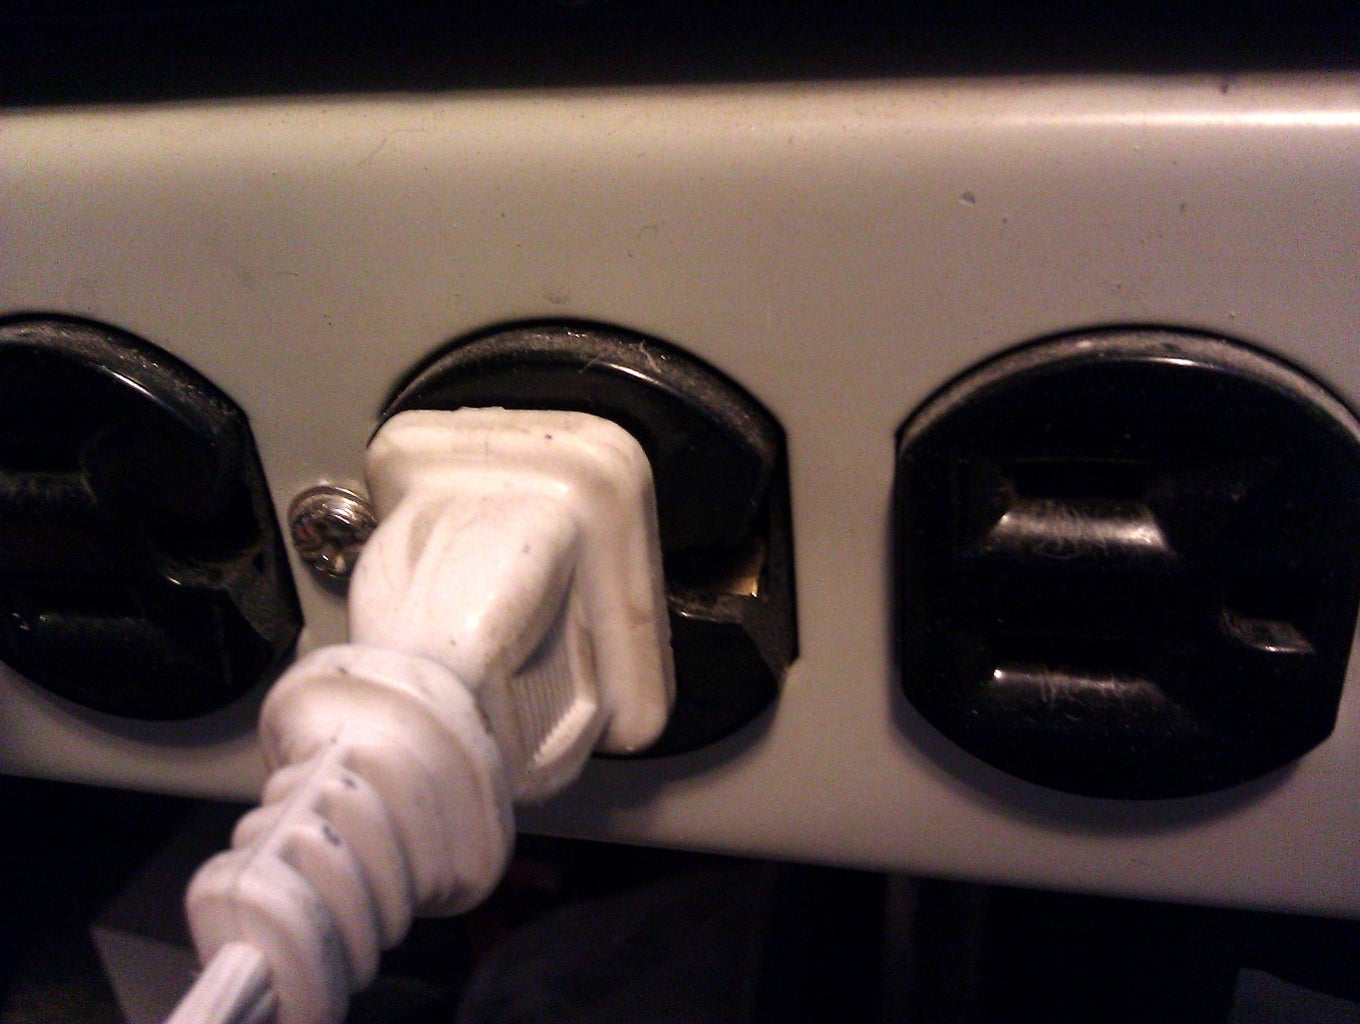 Find Where It Plugs In